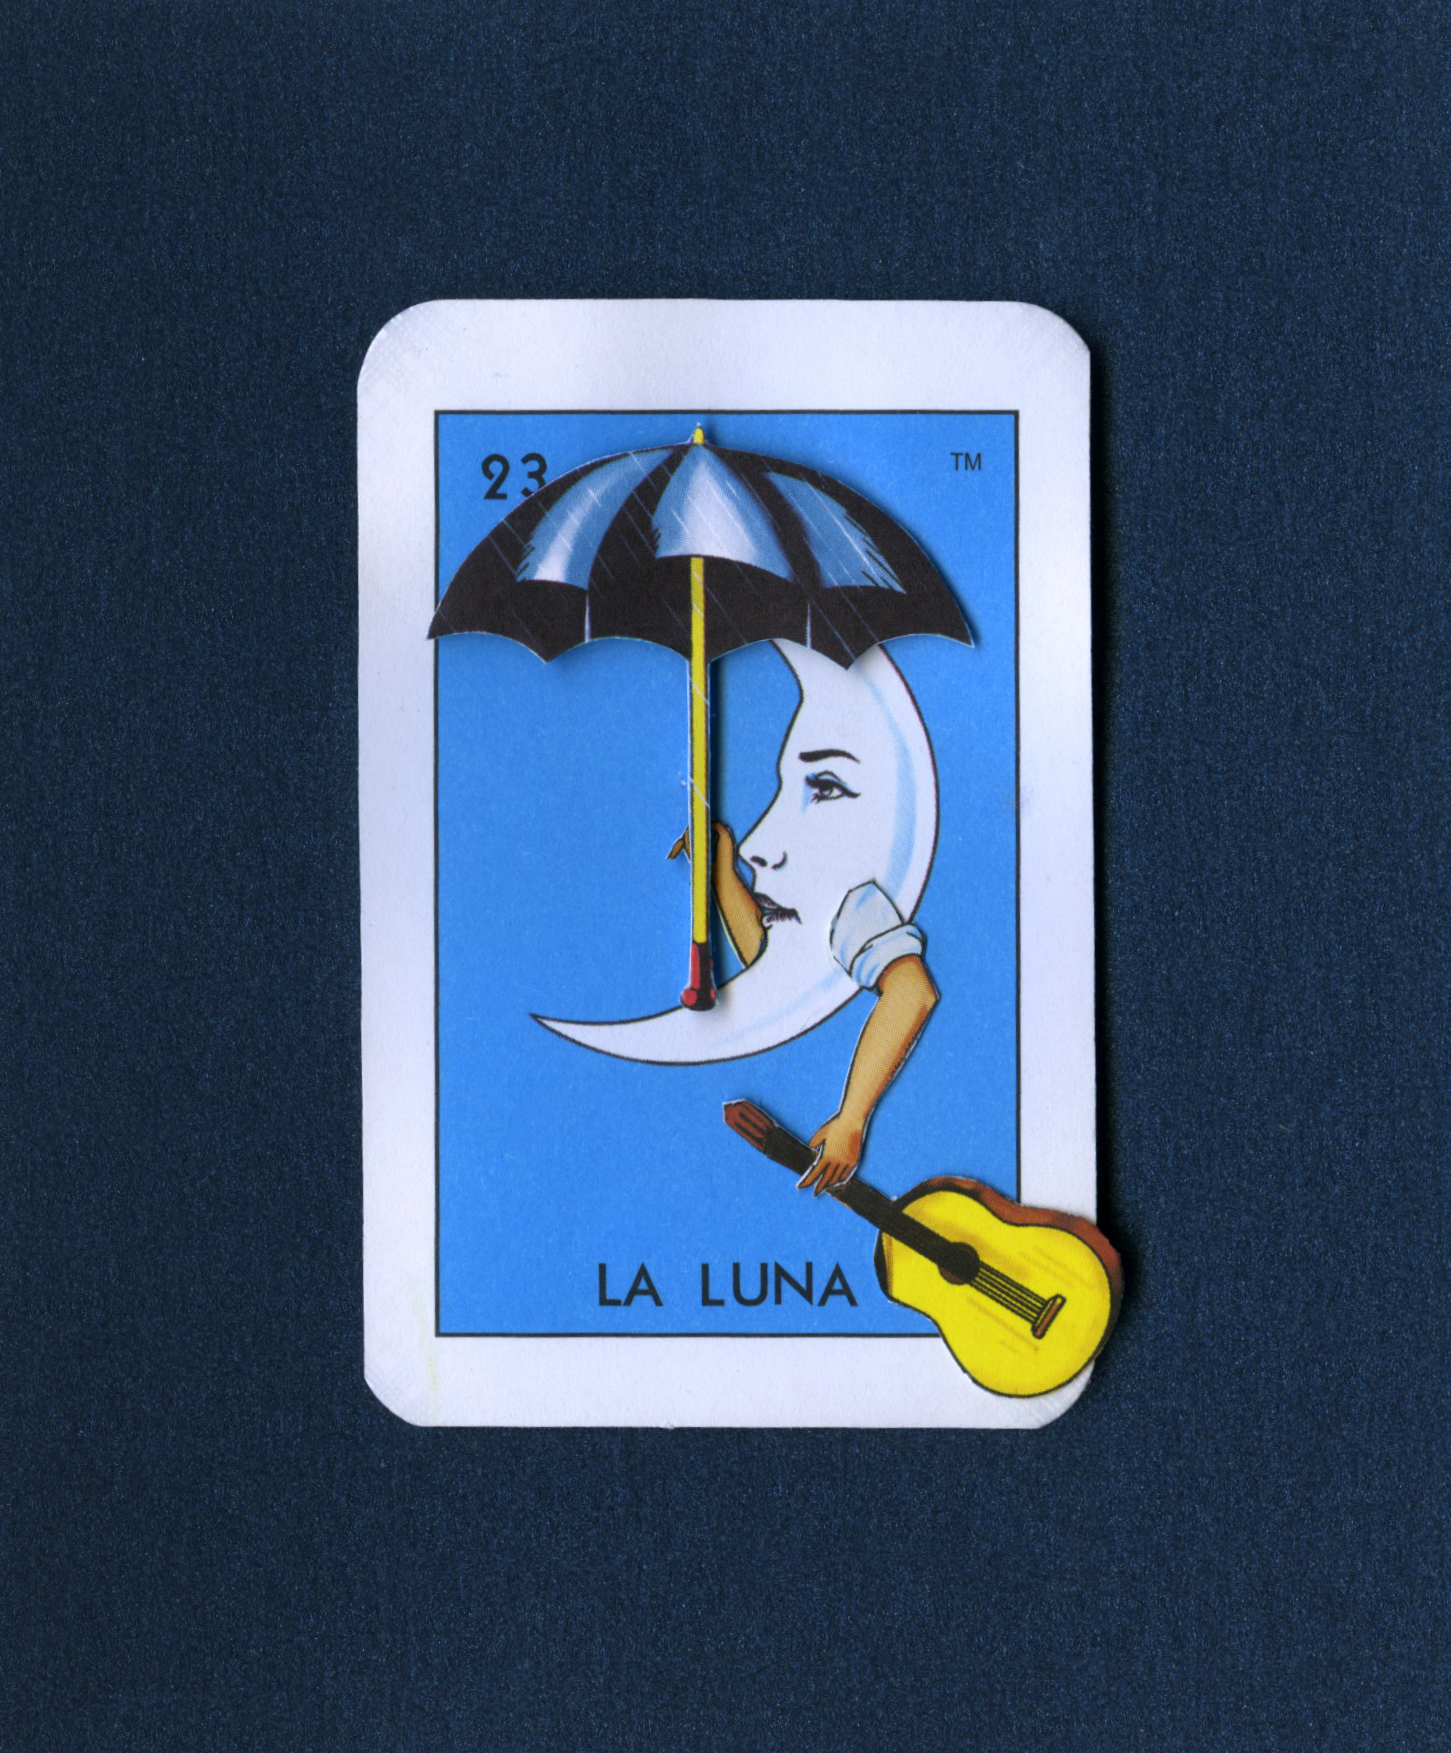 The Moon. The Umbrella. The Musician. The Brave One.  Yo soy ella.